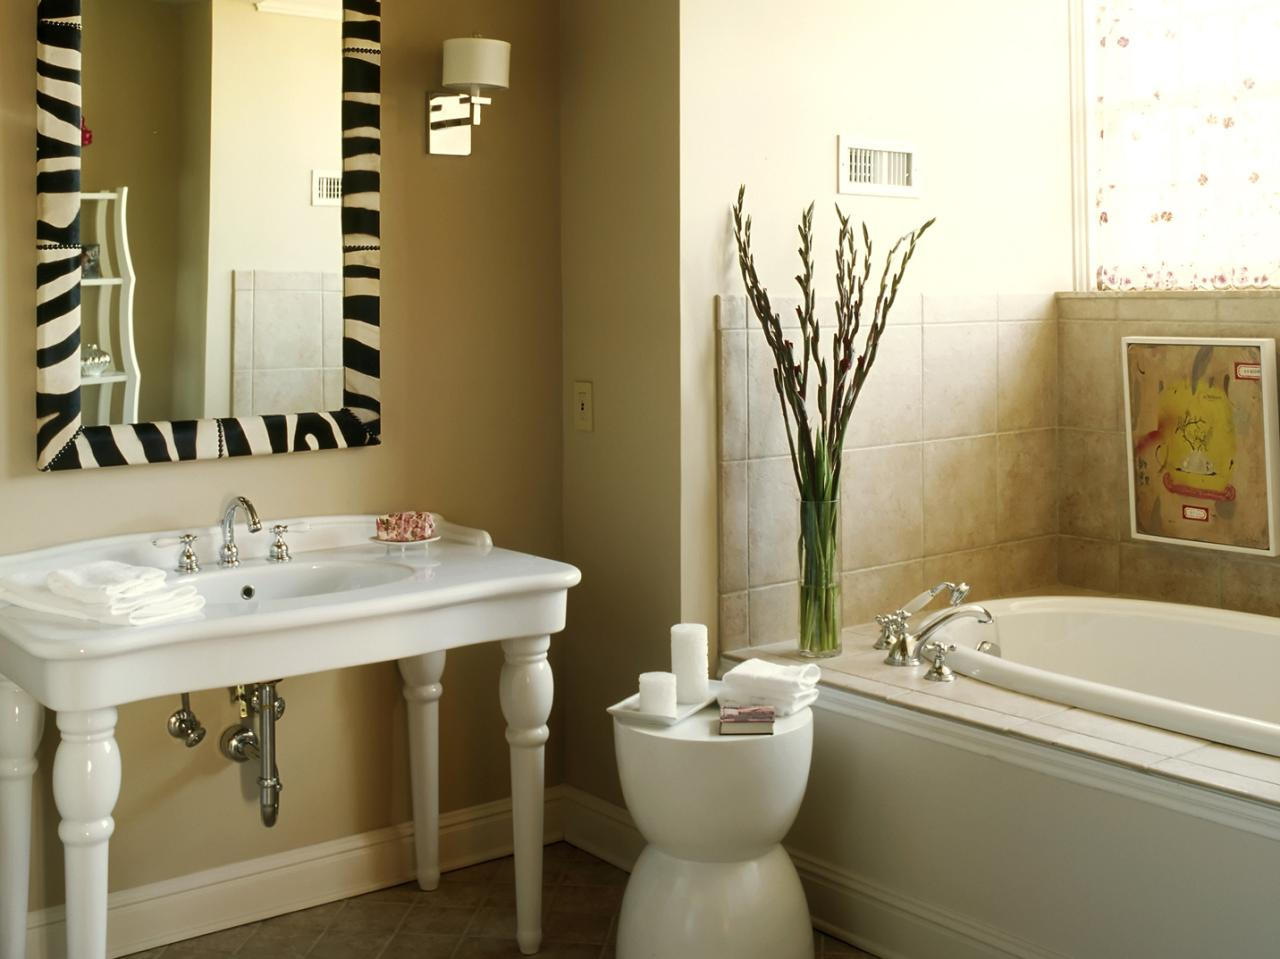 Victorian bathroom design ideas pictures tips from hgtv for Hgtv small bathroom design ideas